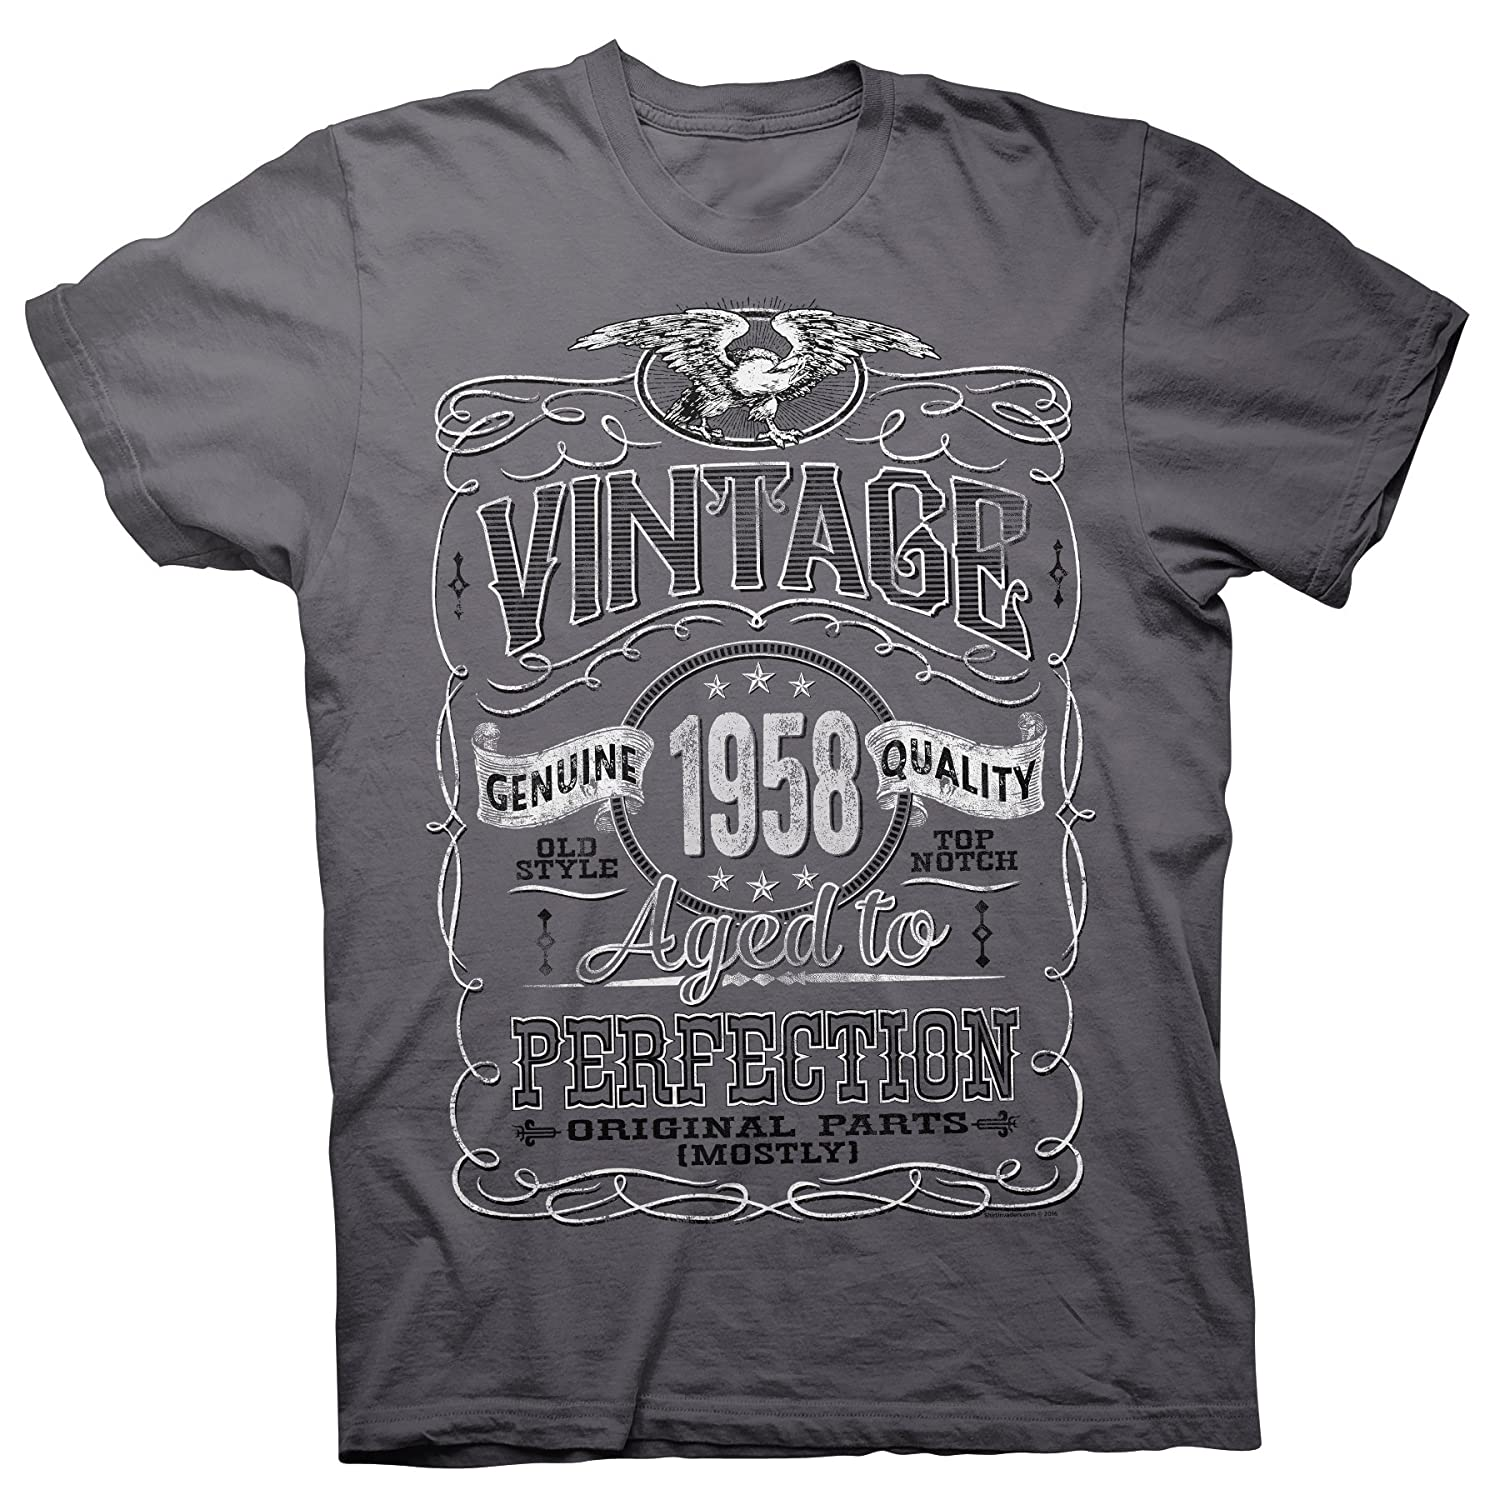 1e4ae1fad05 Top2  ShirtInvaders Vintage Aged Perfection 1958 - Distressed Print - 60th  Birthday Gift T-Shirt. Wholesale Price 22.00 -  30.00. A GREAT GIFT IDEA